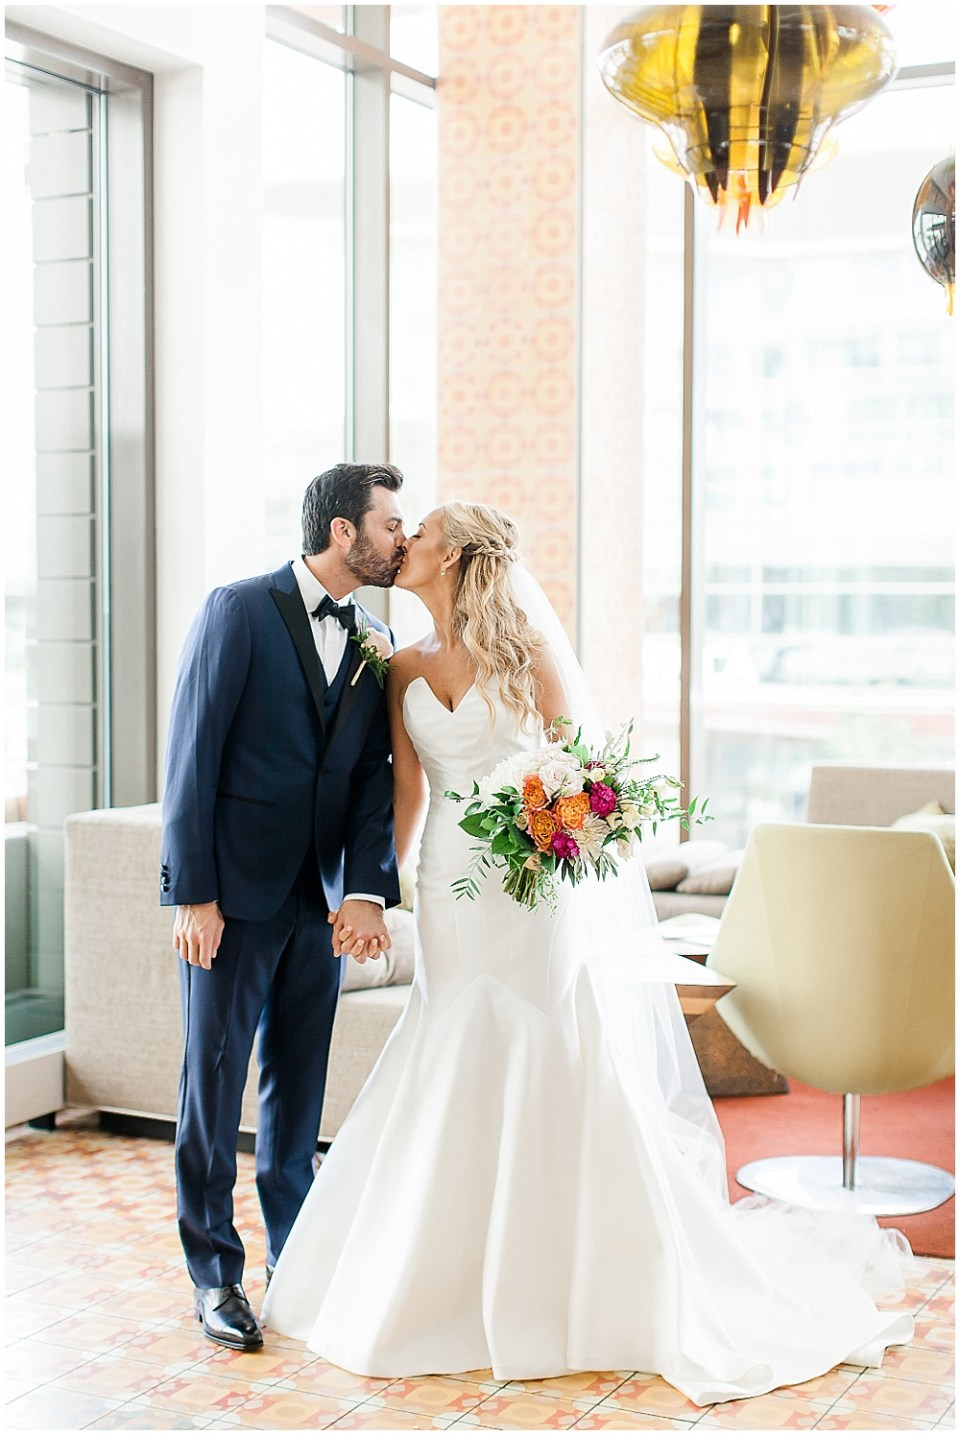 Bride and groom portraits | Canal 337 wedding by Jenny Haas Photography & Jessica Dum Wedding Coordination